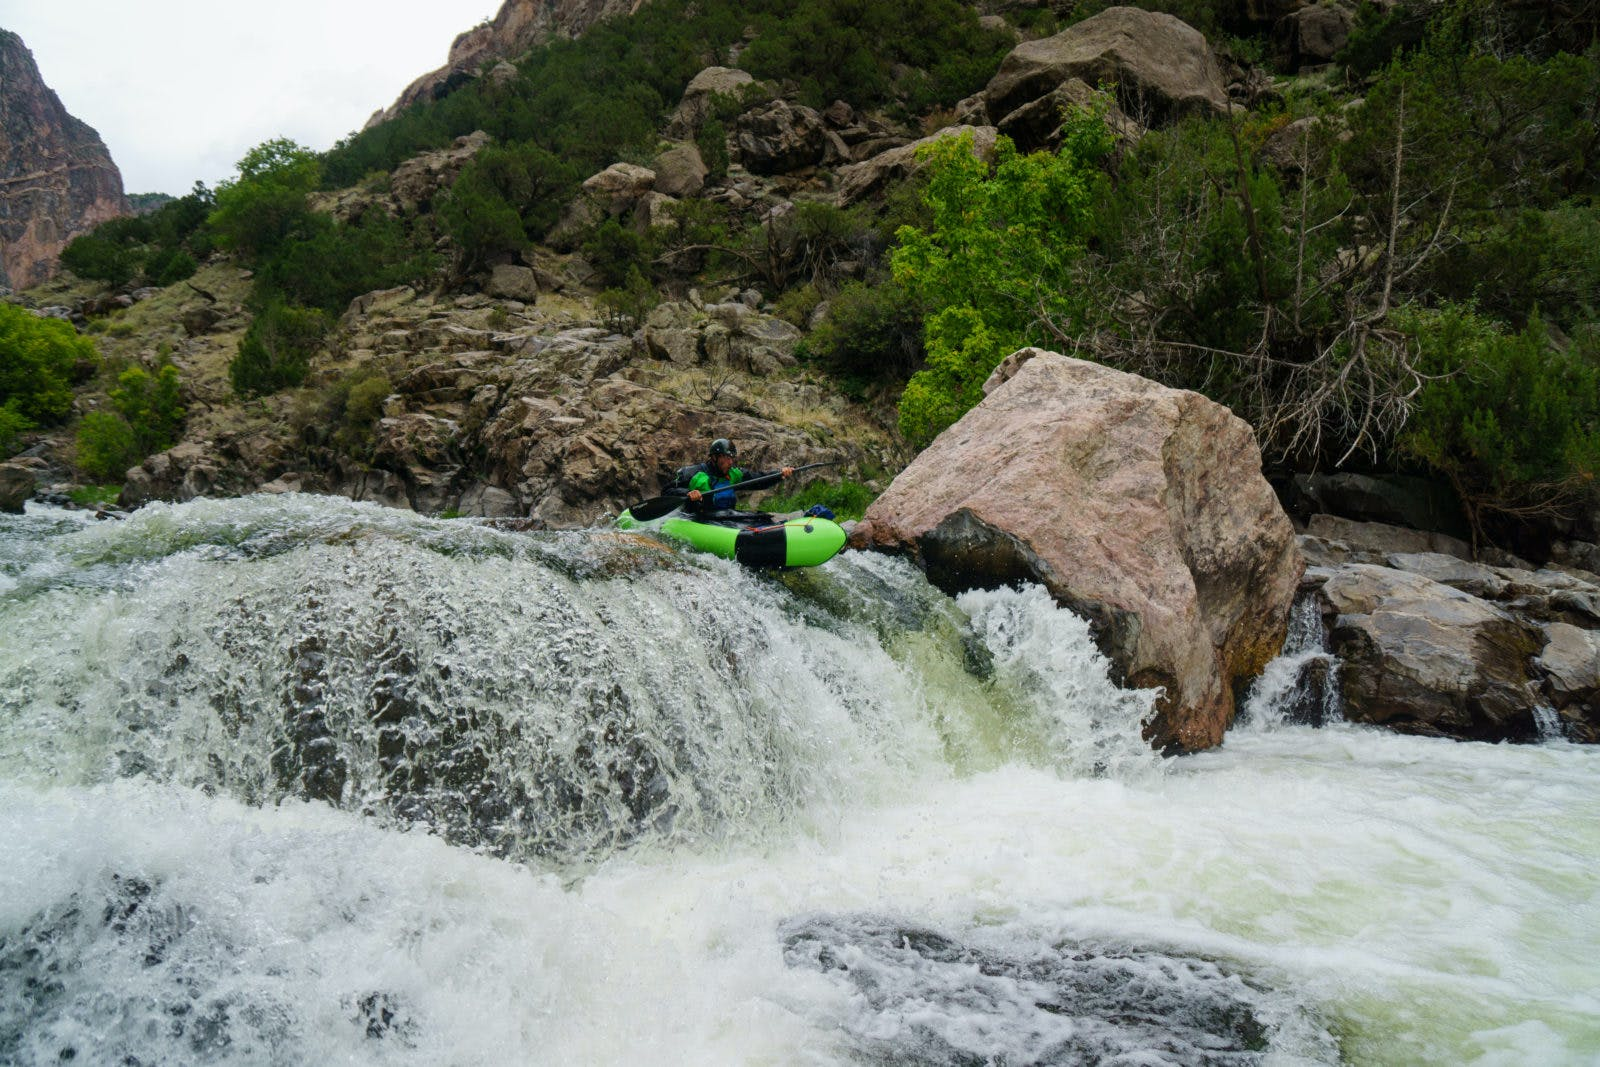 A lime green Gnarwhal launches off a waterfall in the Black Canyon. Photo by Thor Tingey.